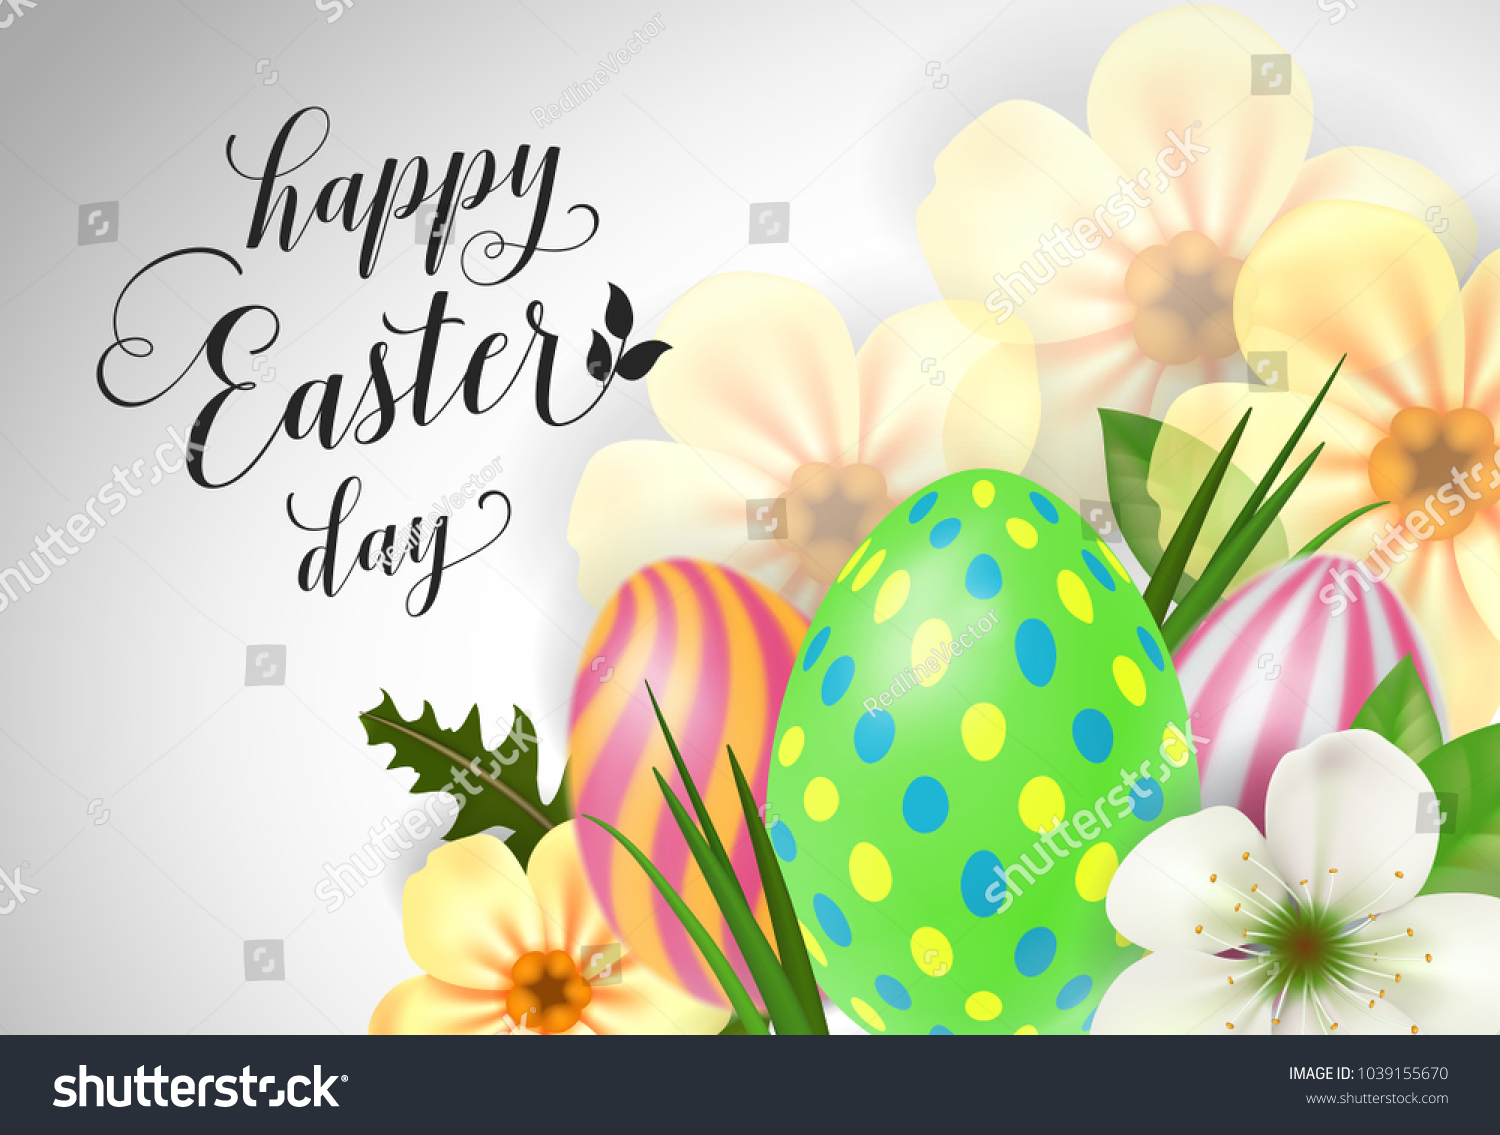 Happy easter day lettering easter greeting stock vector royalty happy easter day lettering easter greeting card with flowers and eggs handwritten text m4hsunfo